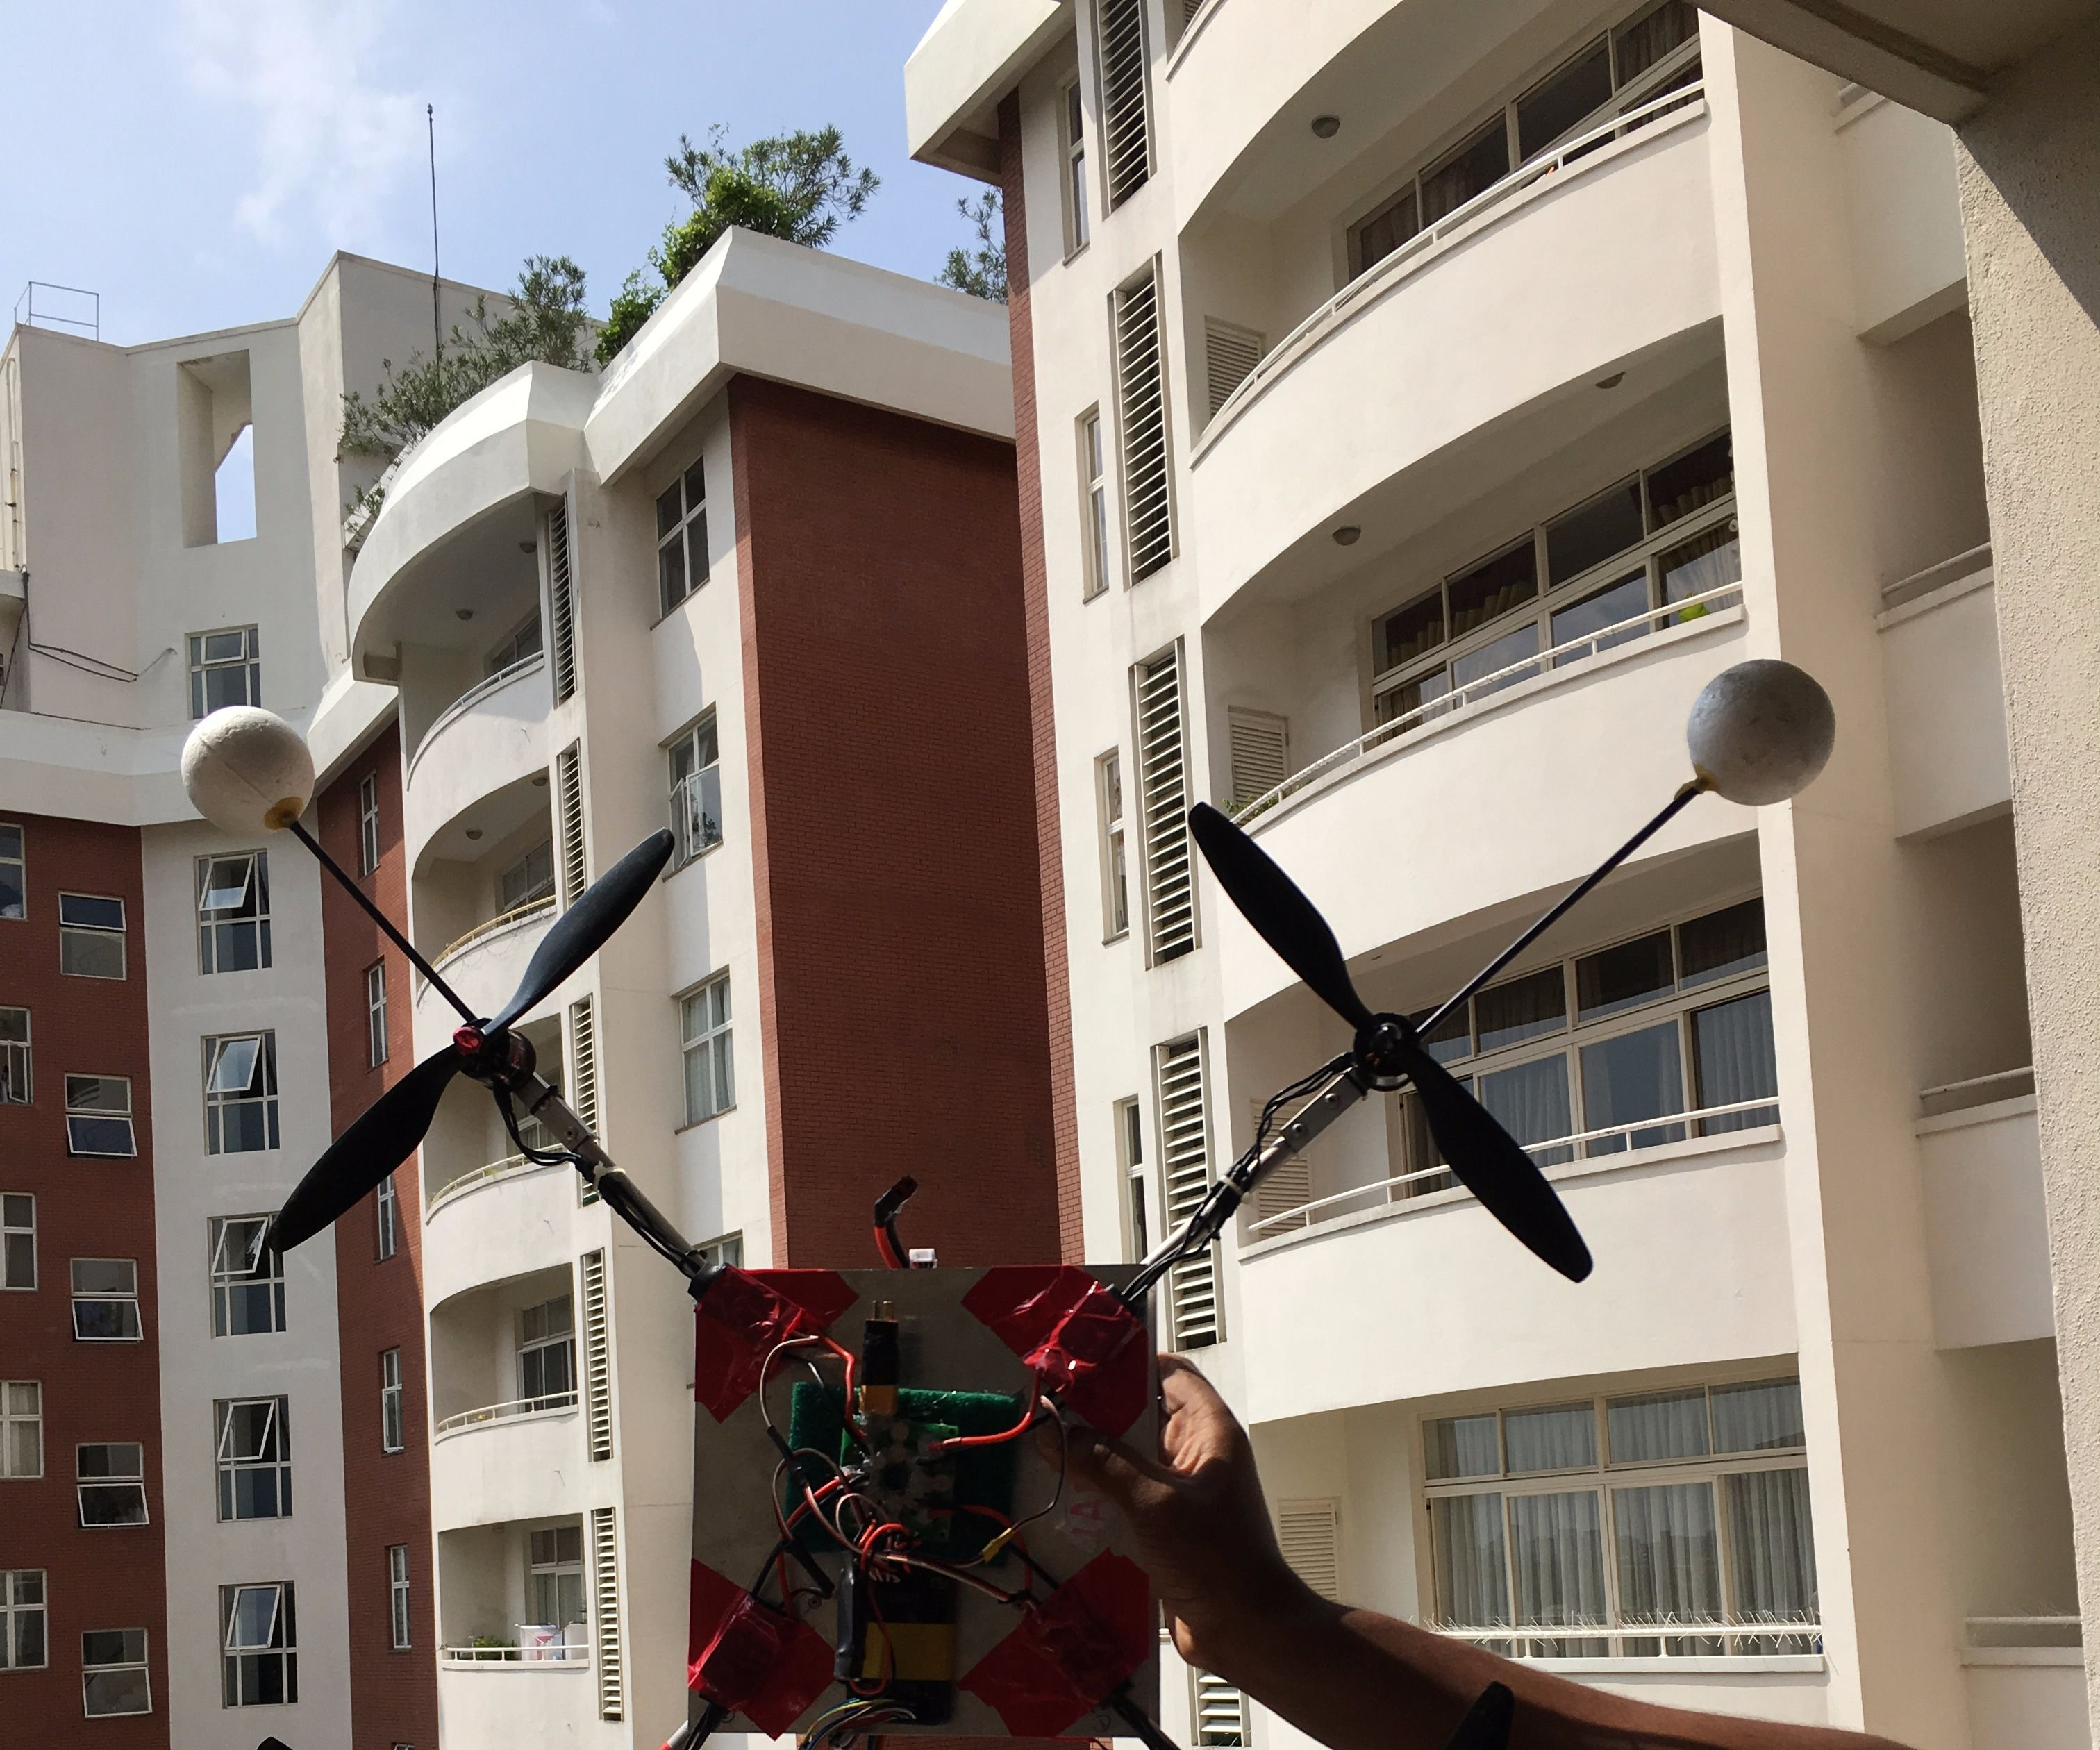 How To Make A Drone - For Beginners